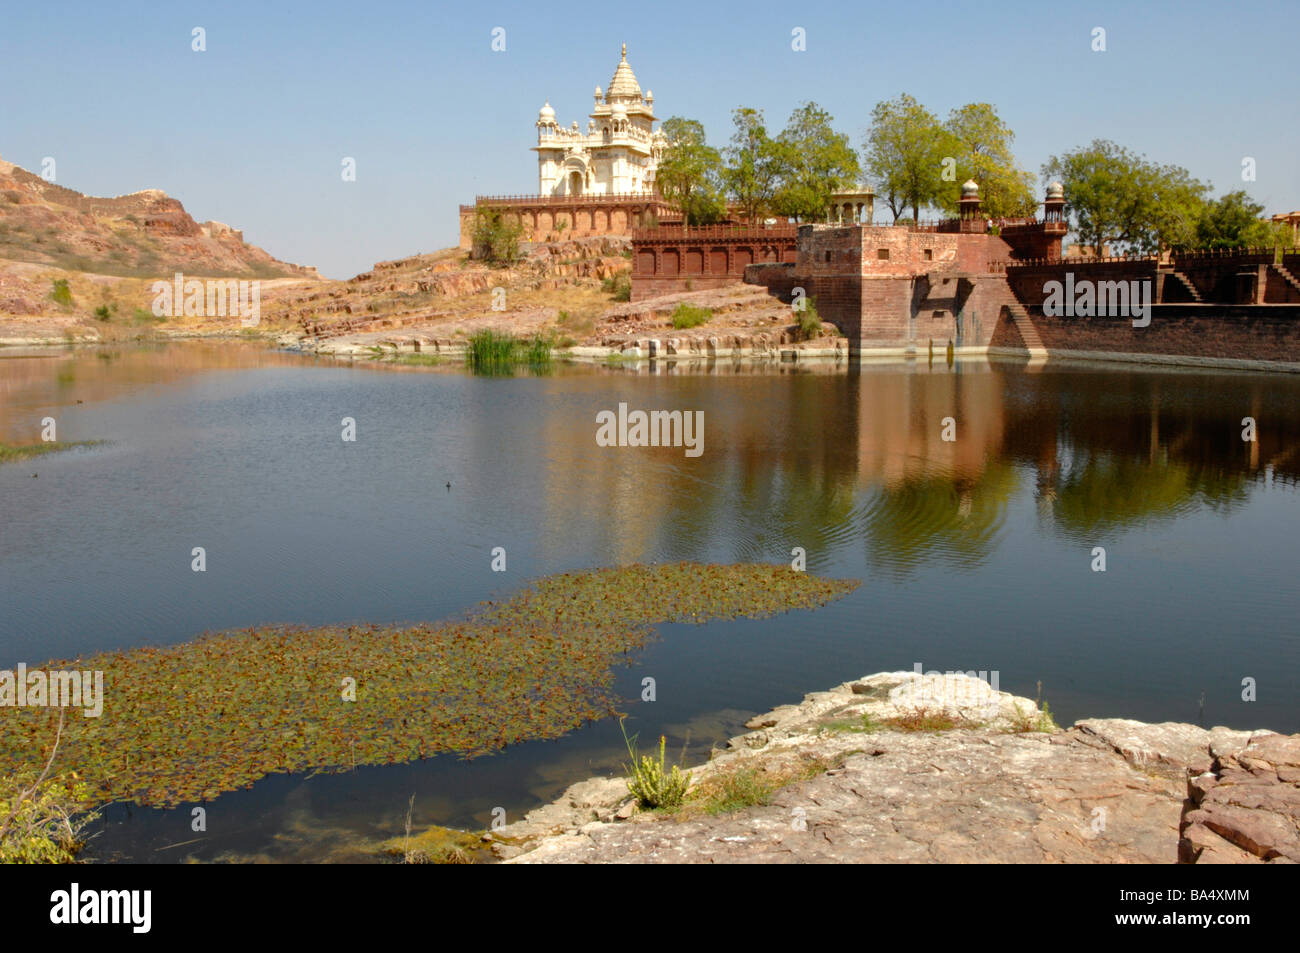 The memorial of the former rulers of Mewar the Jaswant Thada - Stock Image